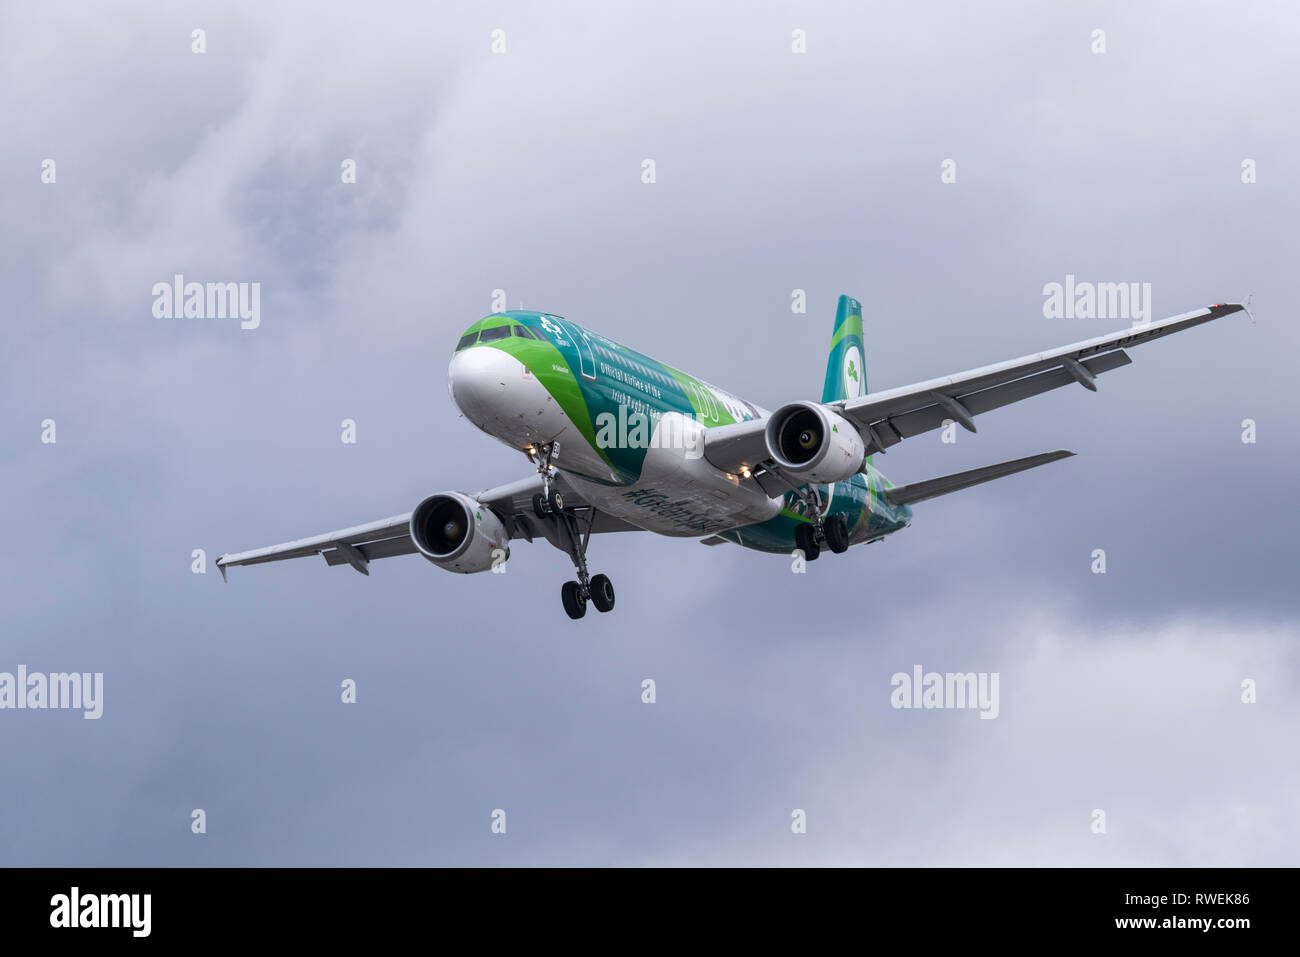 Aer Lingus Airbus A320 jet plane airliner EI-DEO landing at